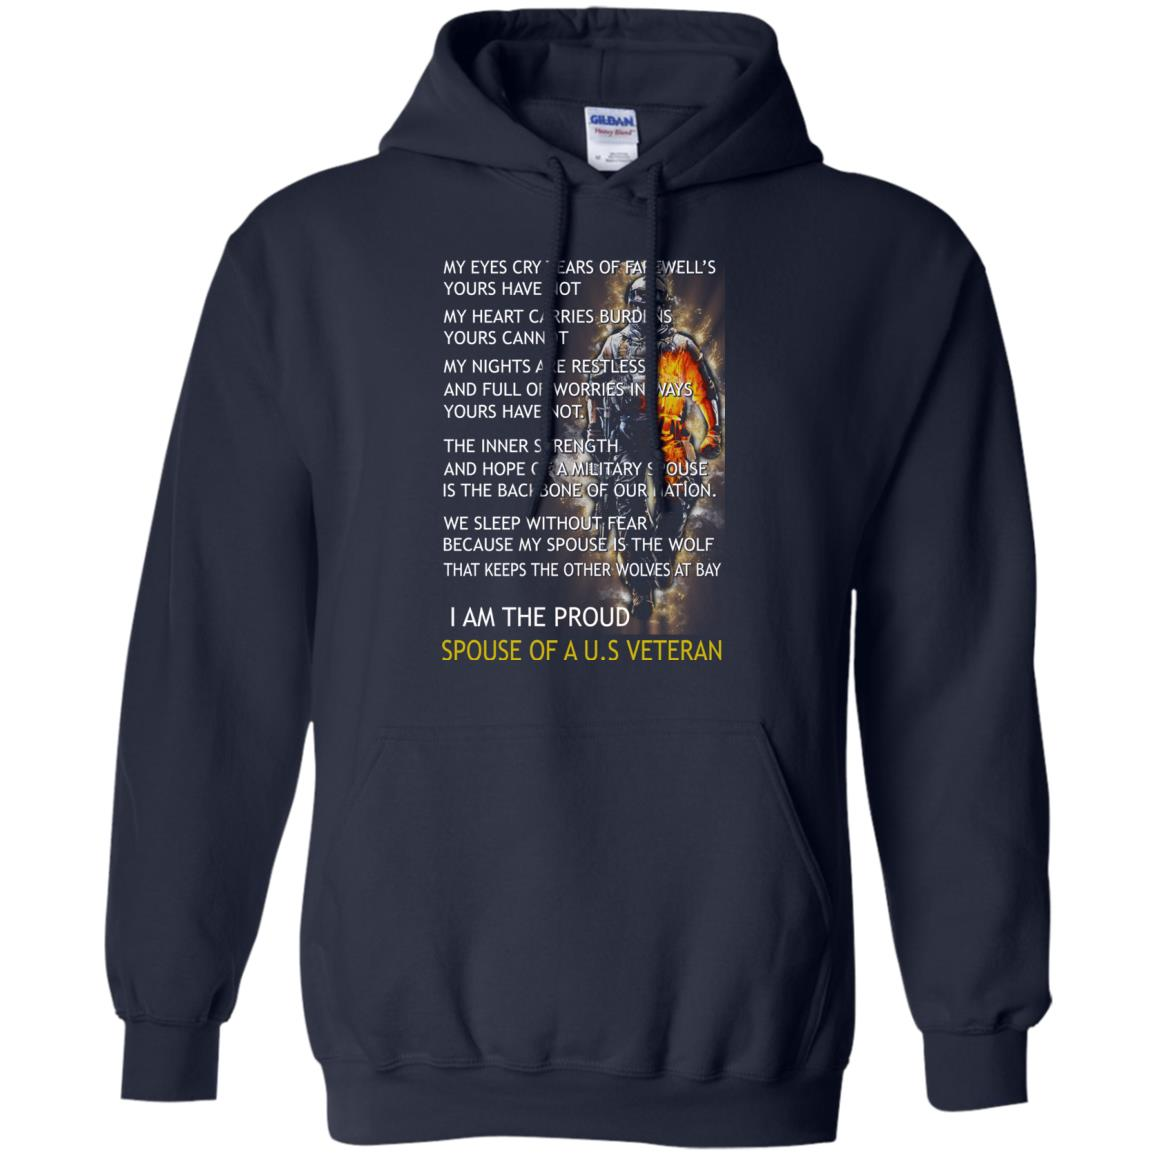 image 771px I am the proud spouse of a U.S Veteran, my eyes cry tears of farewell's t shirt